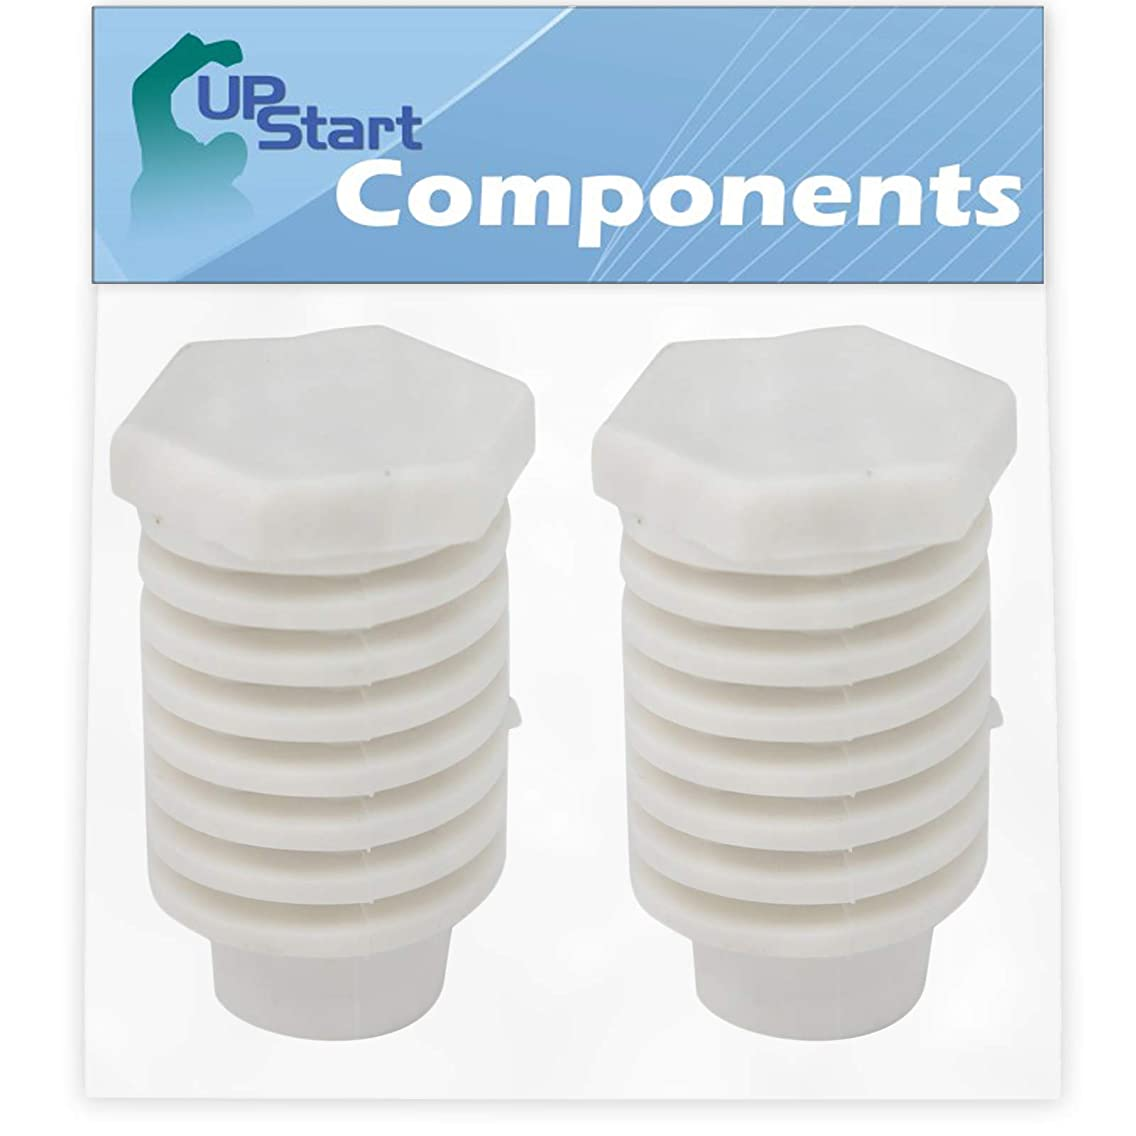 2-Pack 49621 Leveling Foot Replacement for Whirlpool WGD88HEAW1 Dryer - Compatible with 49621 Dryer Leveling Leg Foot - UpStart Components Brand